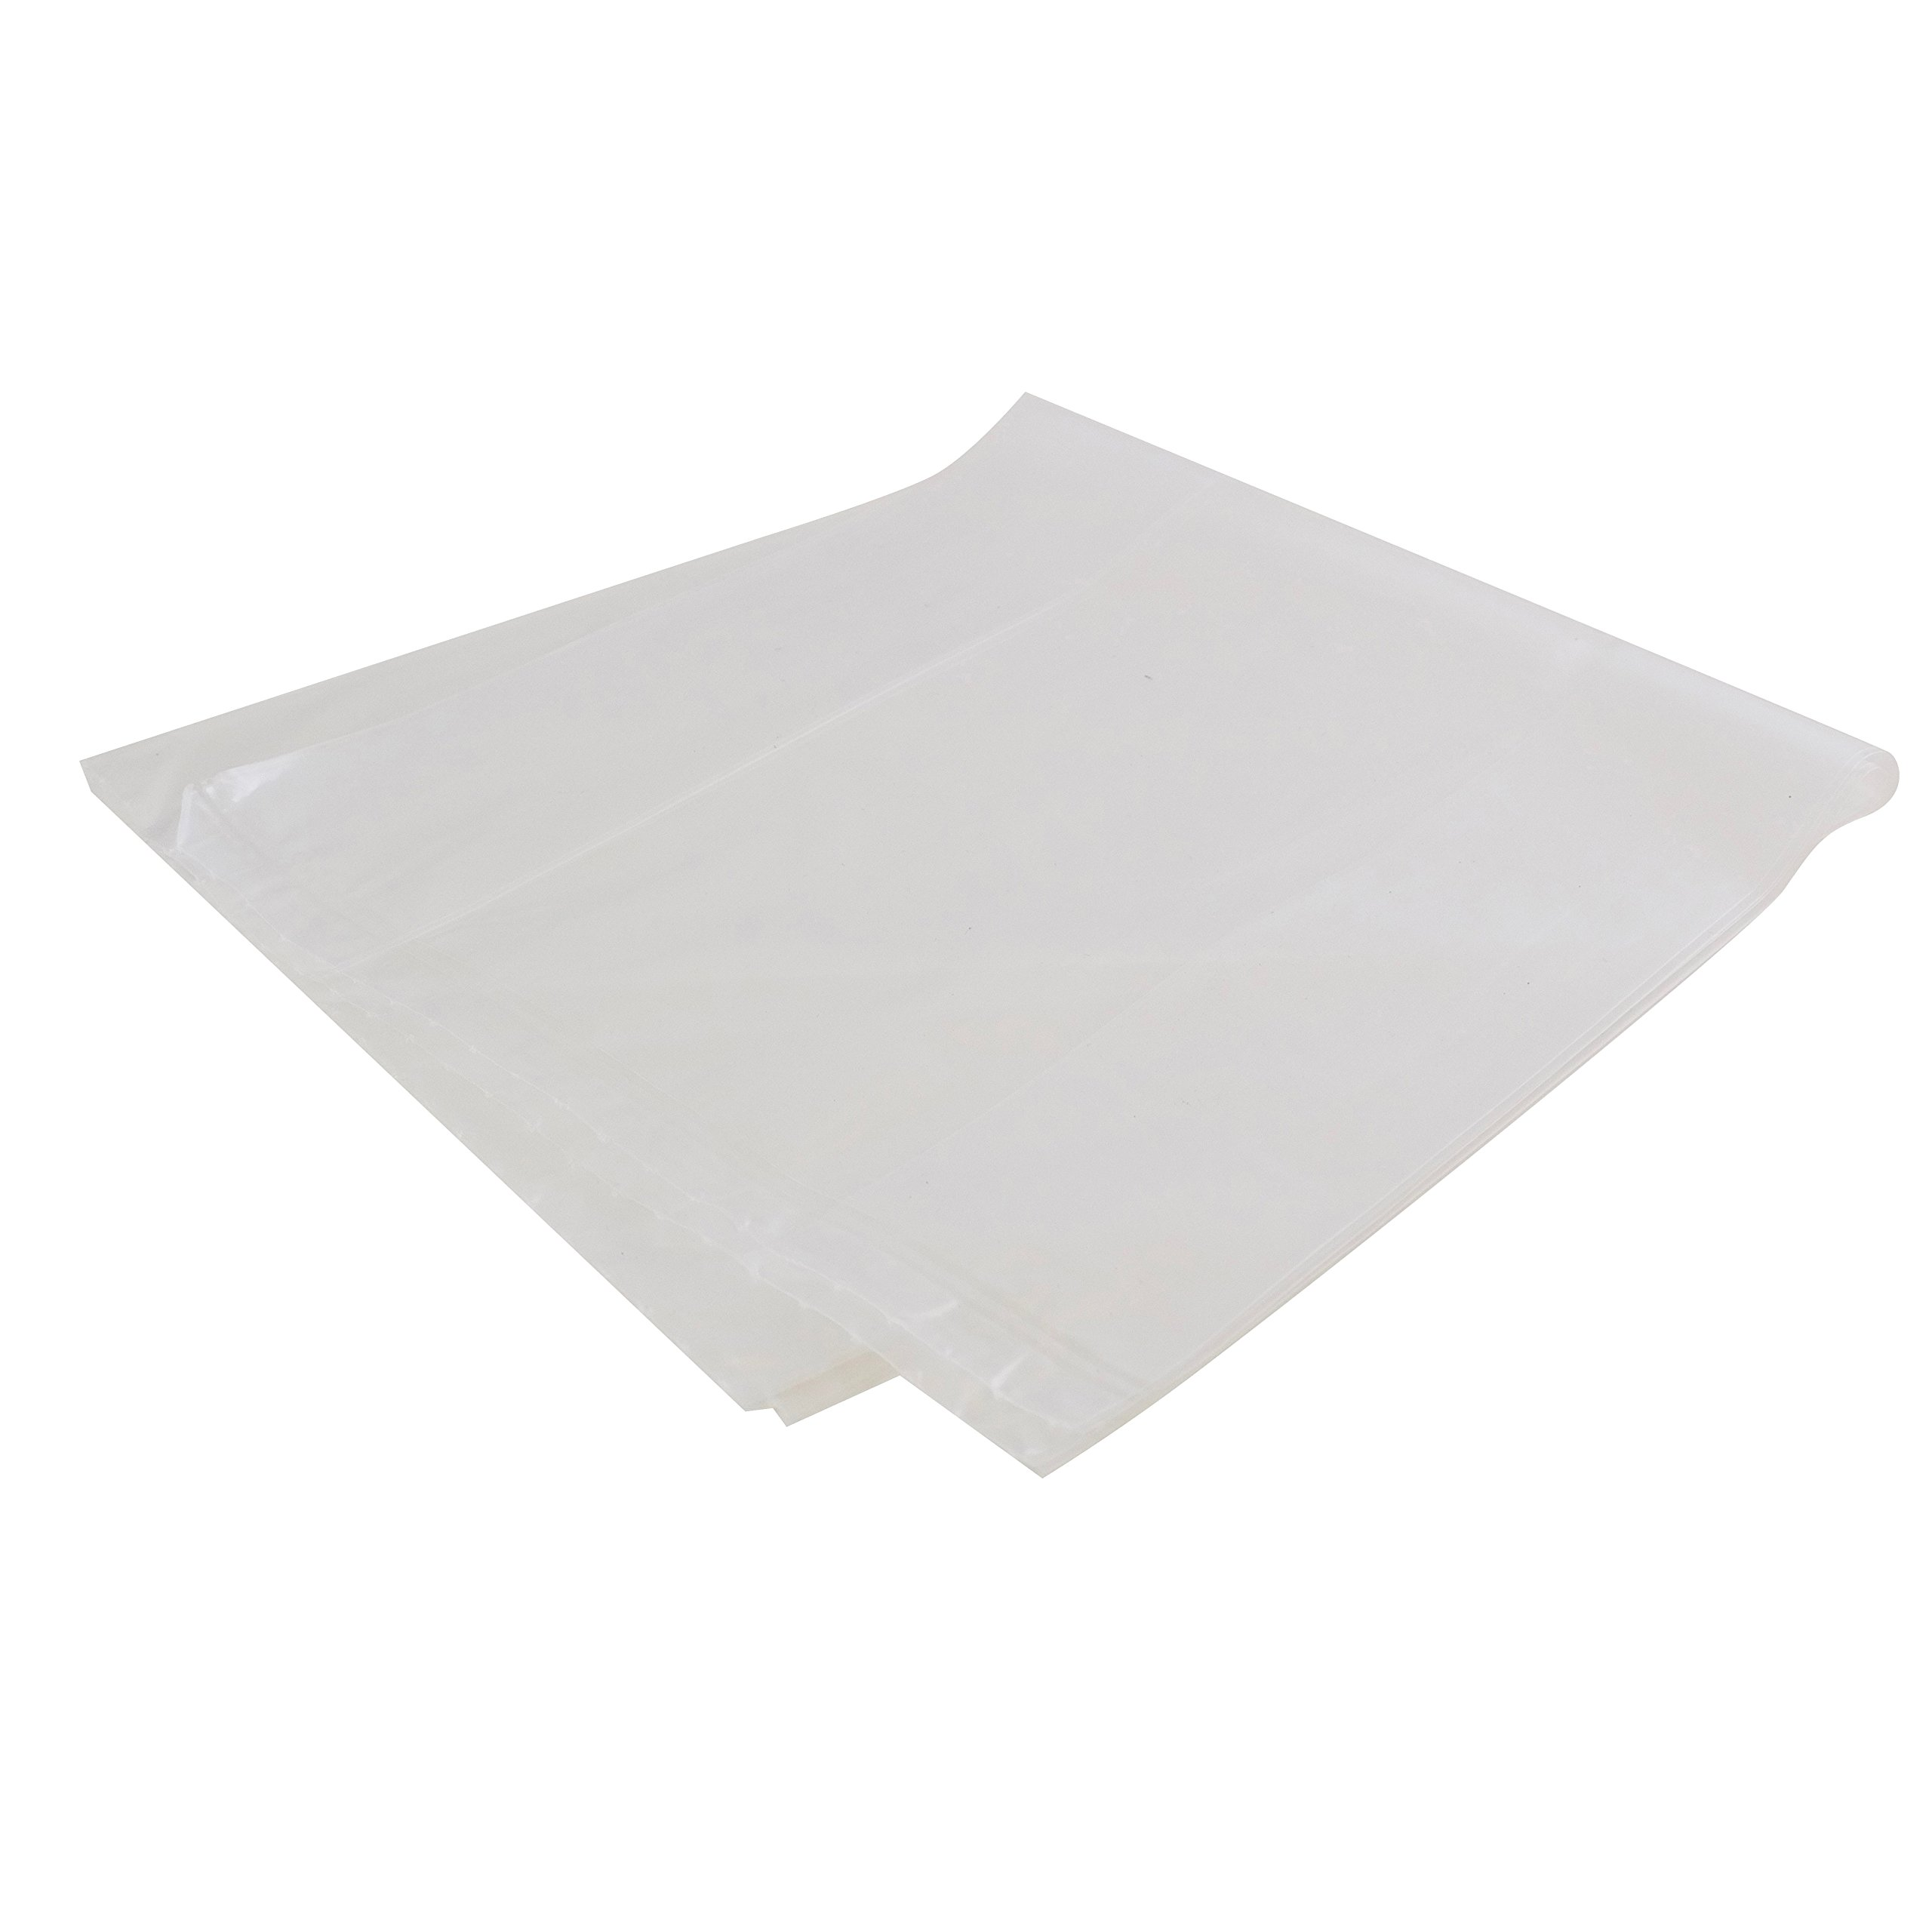 Gussetted Poly Bags, Low Density, 1.5 mil Thick, 8 x 4 x 18 Inches, 100 Bags per Case by RPI